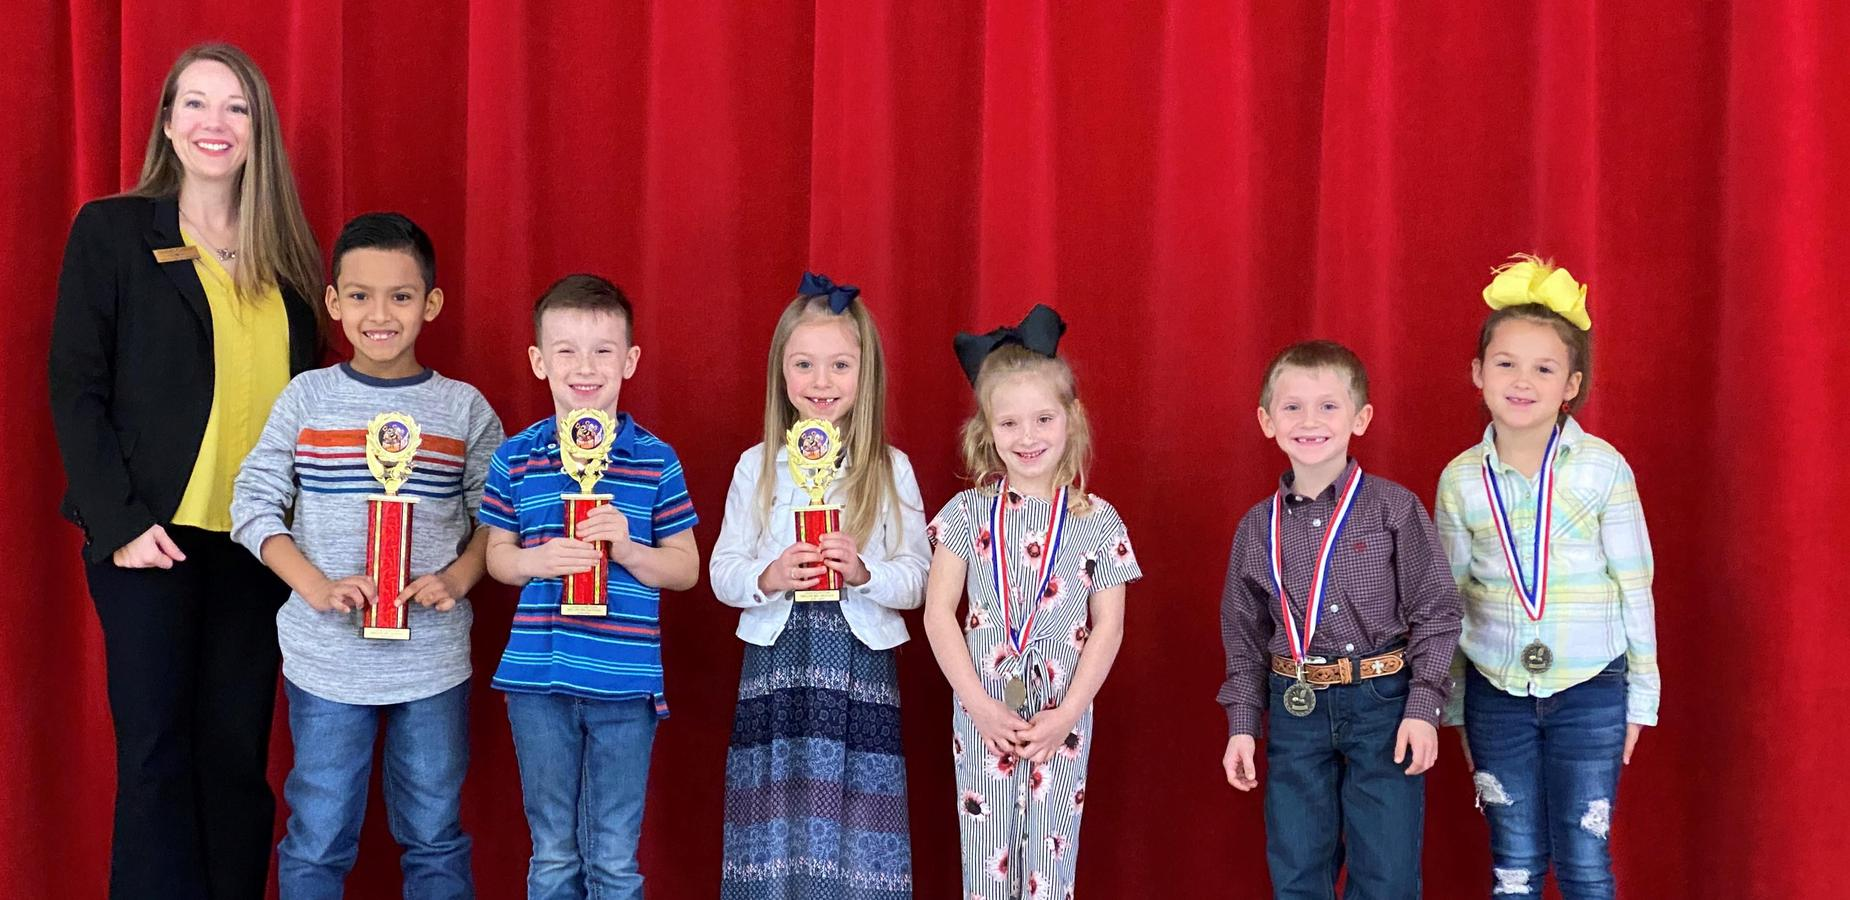 Mrs. Fowler pictured with spelling bee winners 1st through 6th places with their trophies and medals